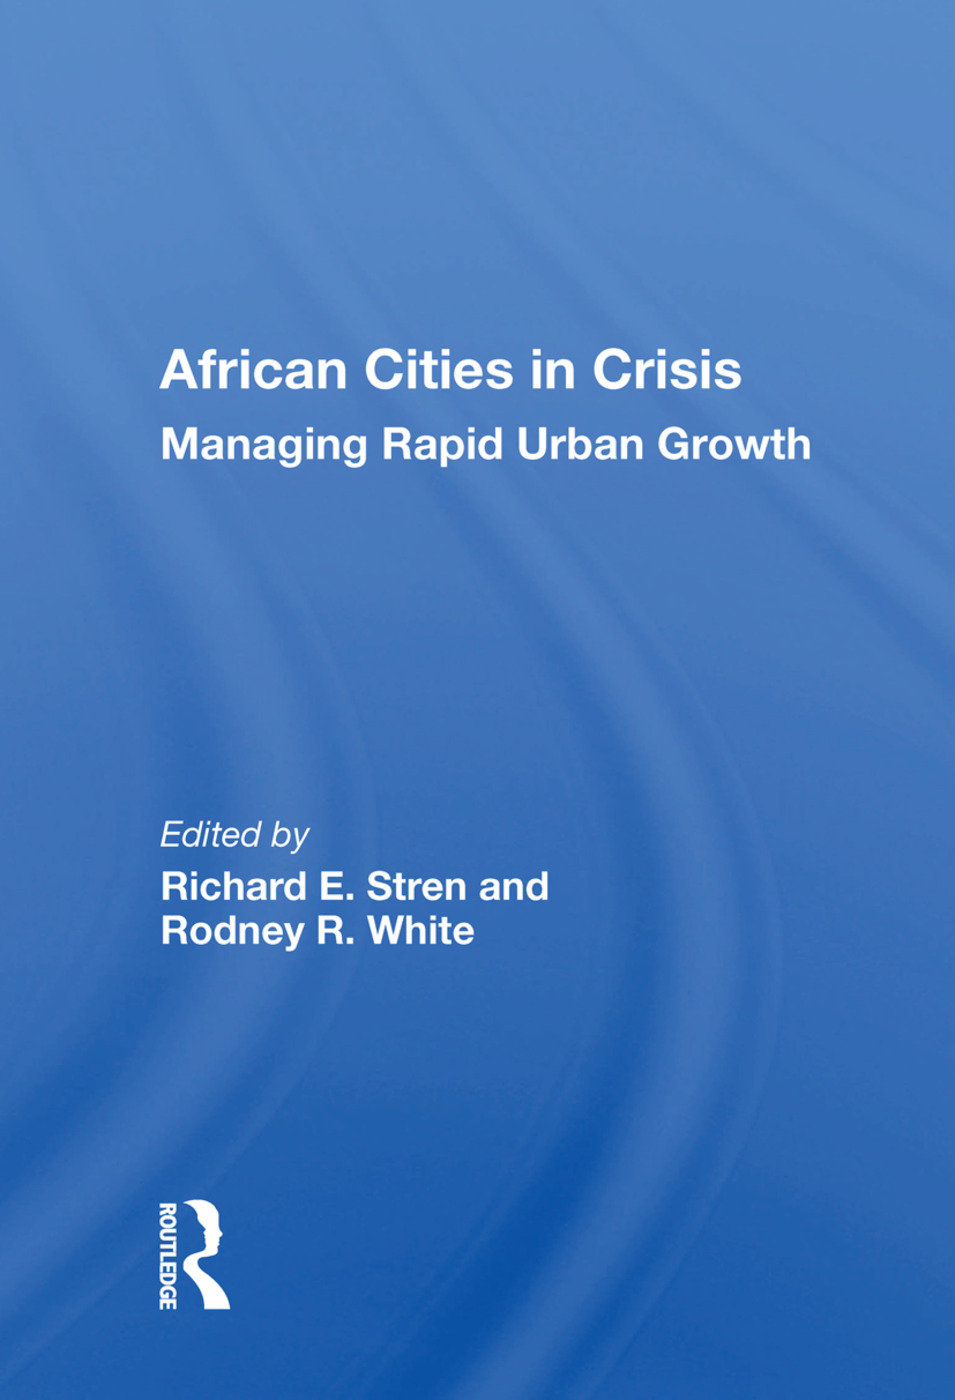 African Cities in Crisis